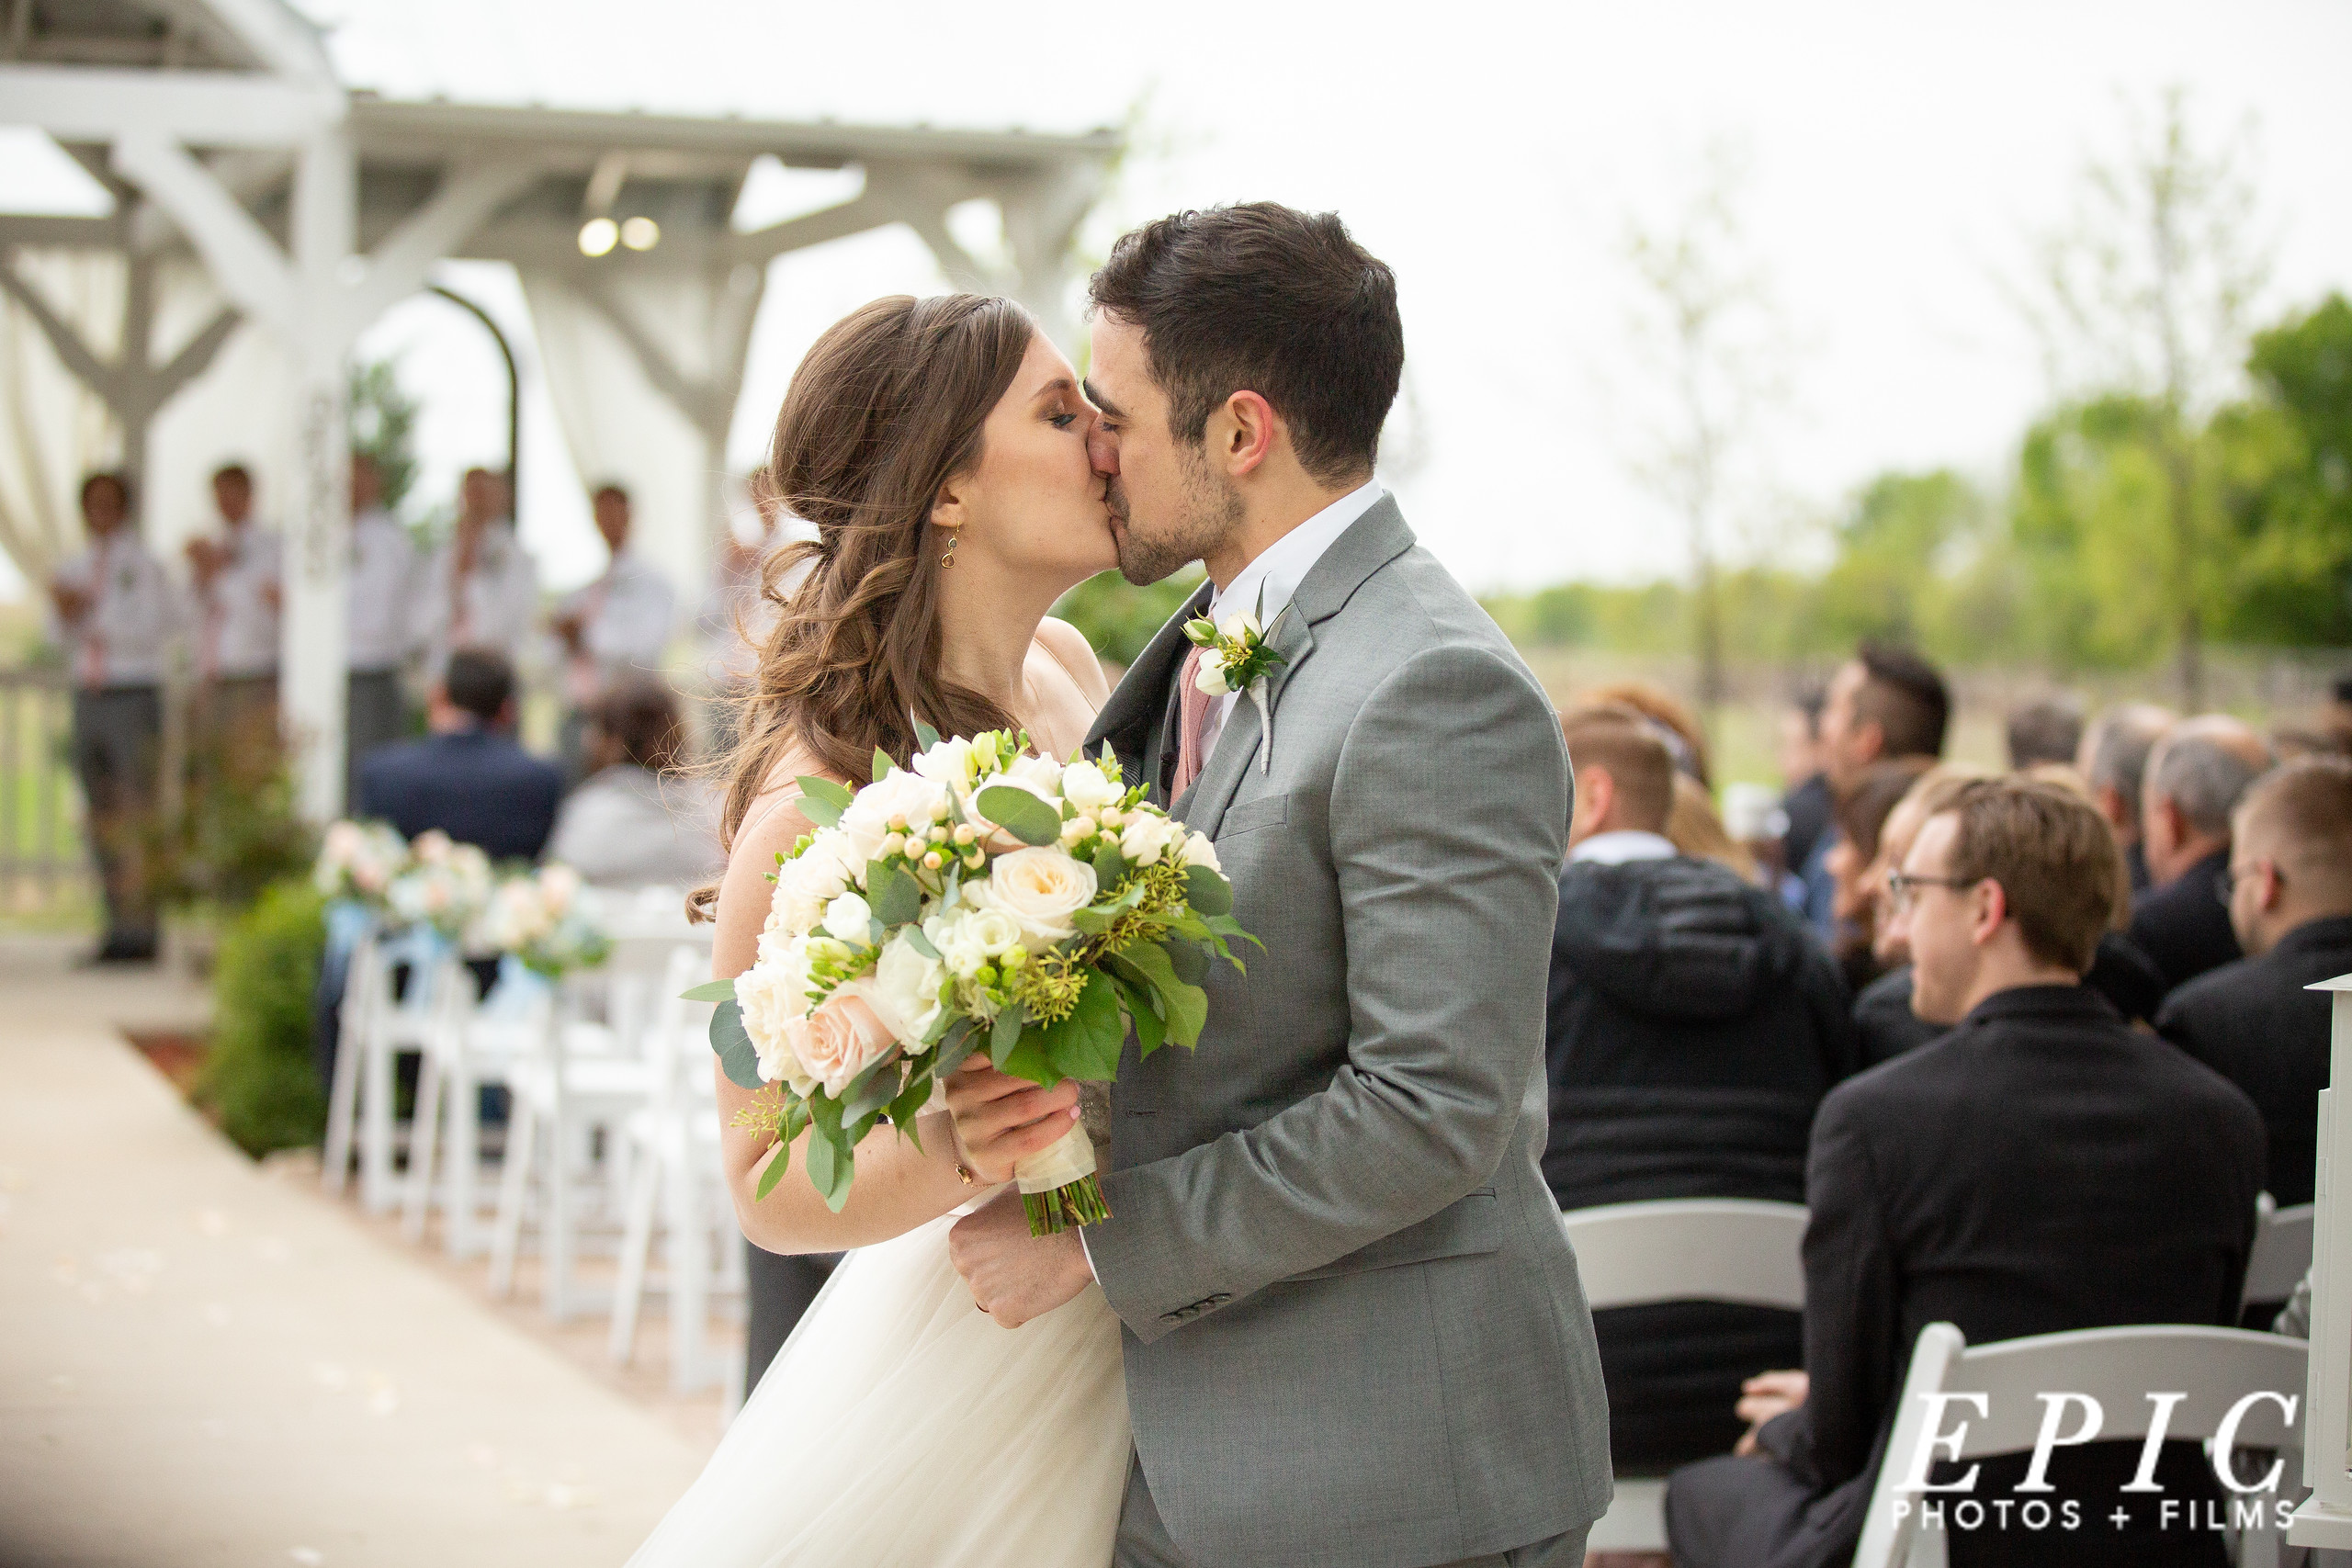 bride and groom kiss as they make it to the back of the seating area at Willow Creek as they finish their recessional walk down the aisle